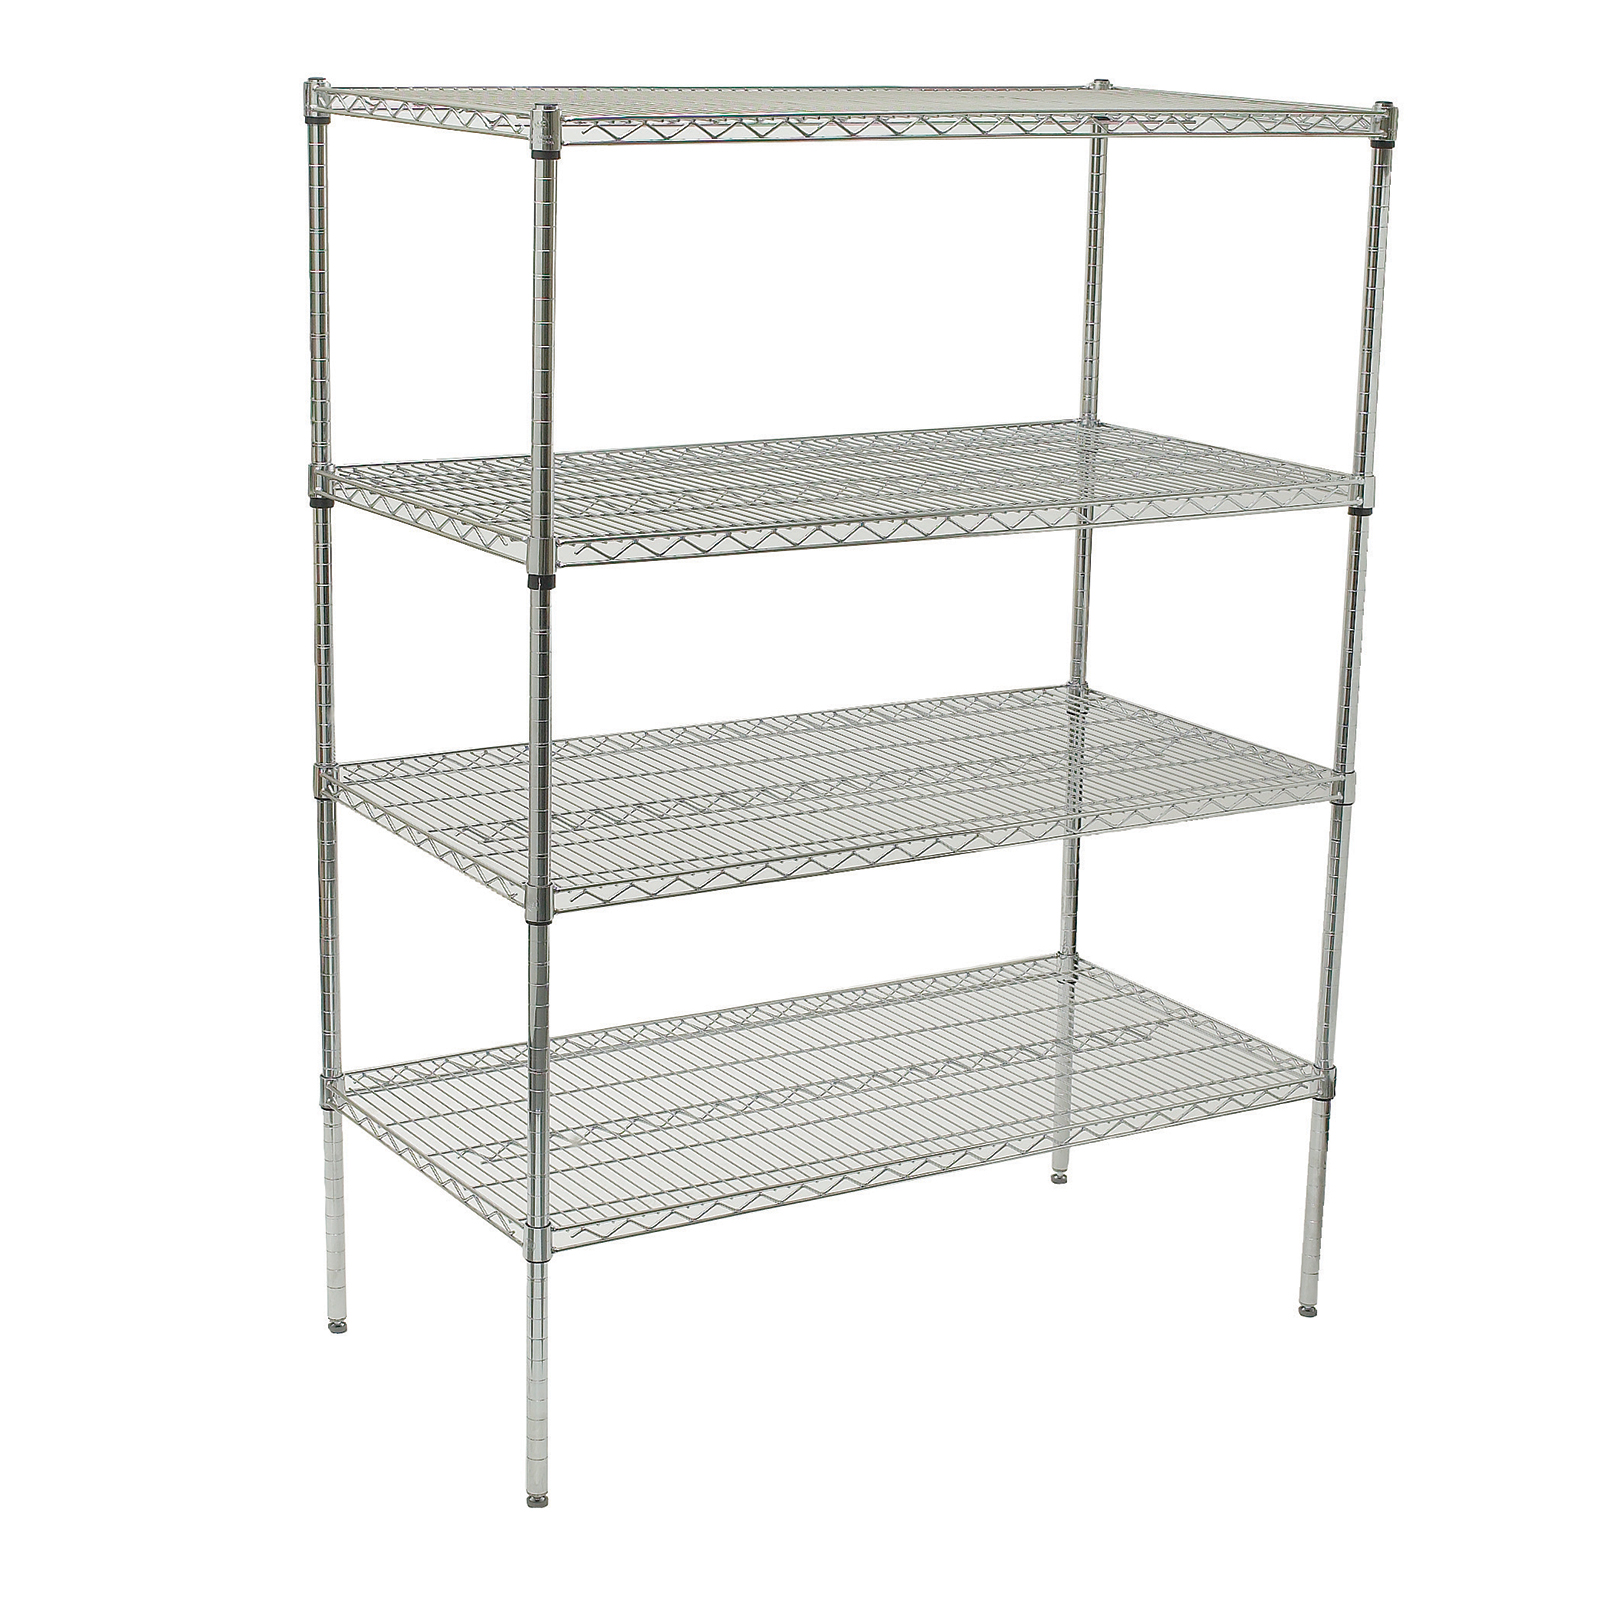 Winco VCS-2436 shelving unit, wire